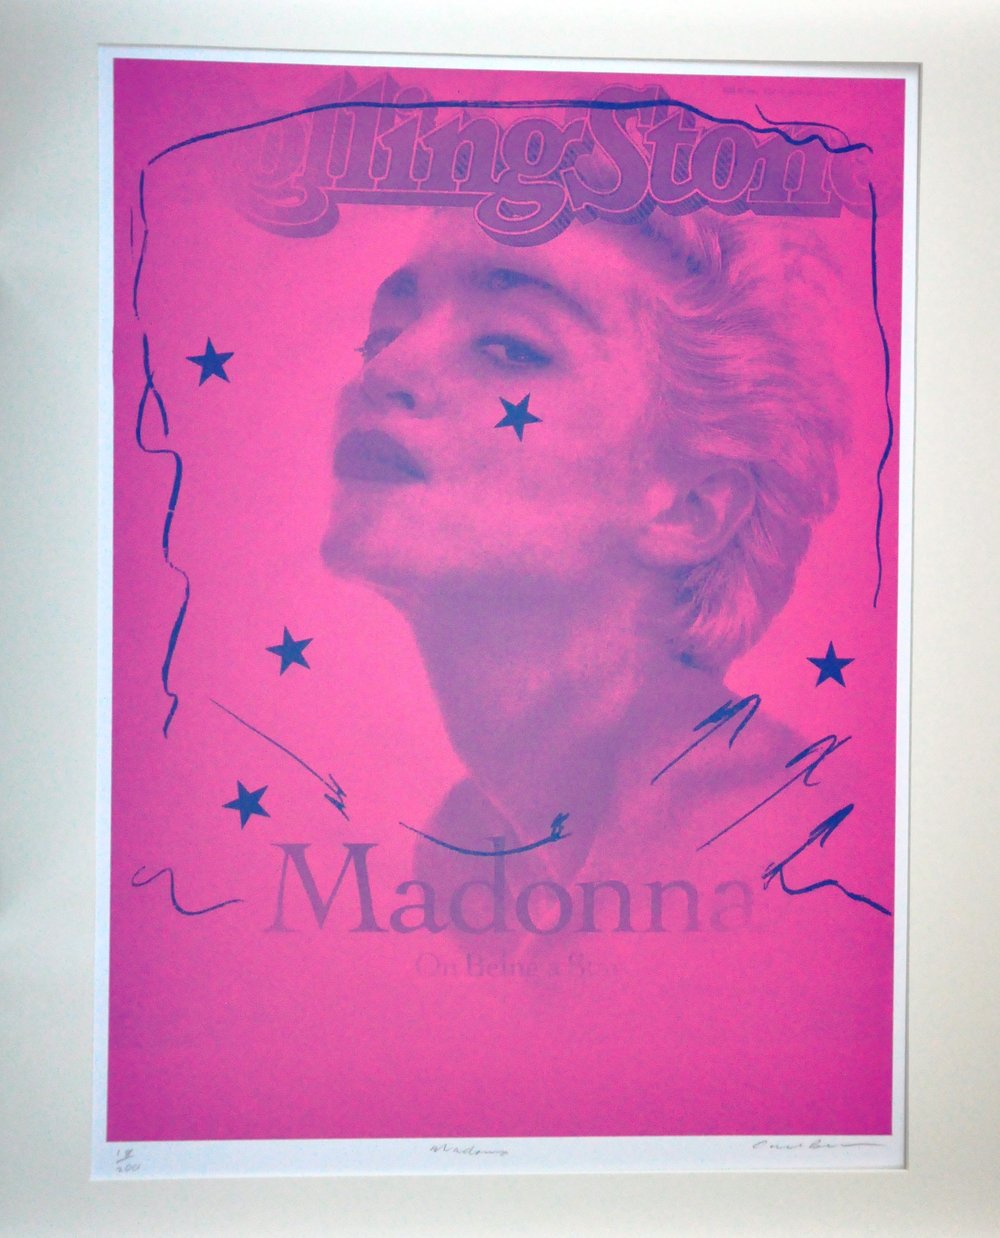 "Madonna,  2000, Carl Beam, serigraph on paper, edition 18/200, 30"" x 22"", 2006.05.06, gift of the Milton Winberg Foundation"